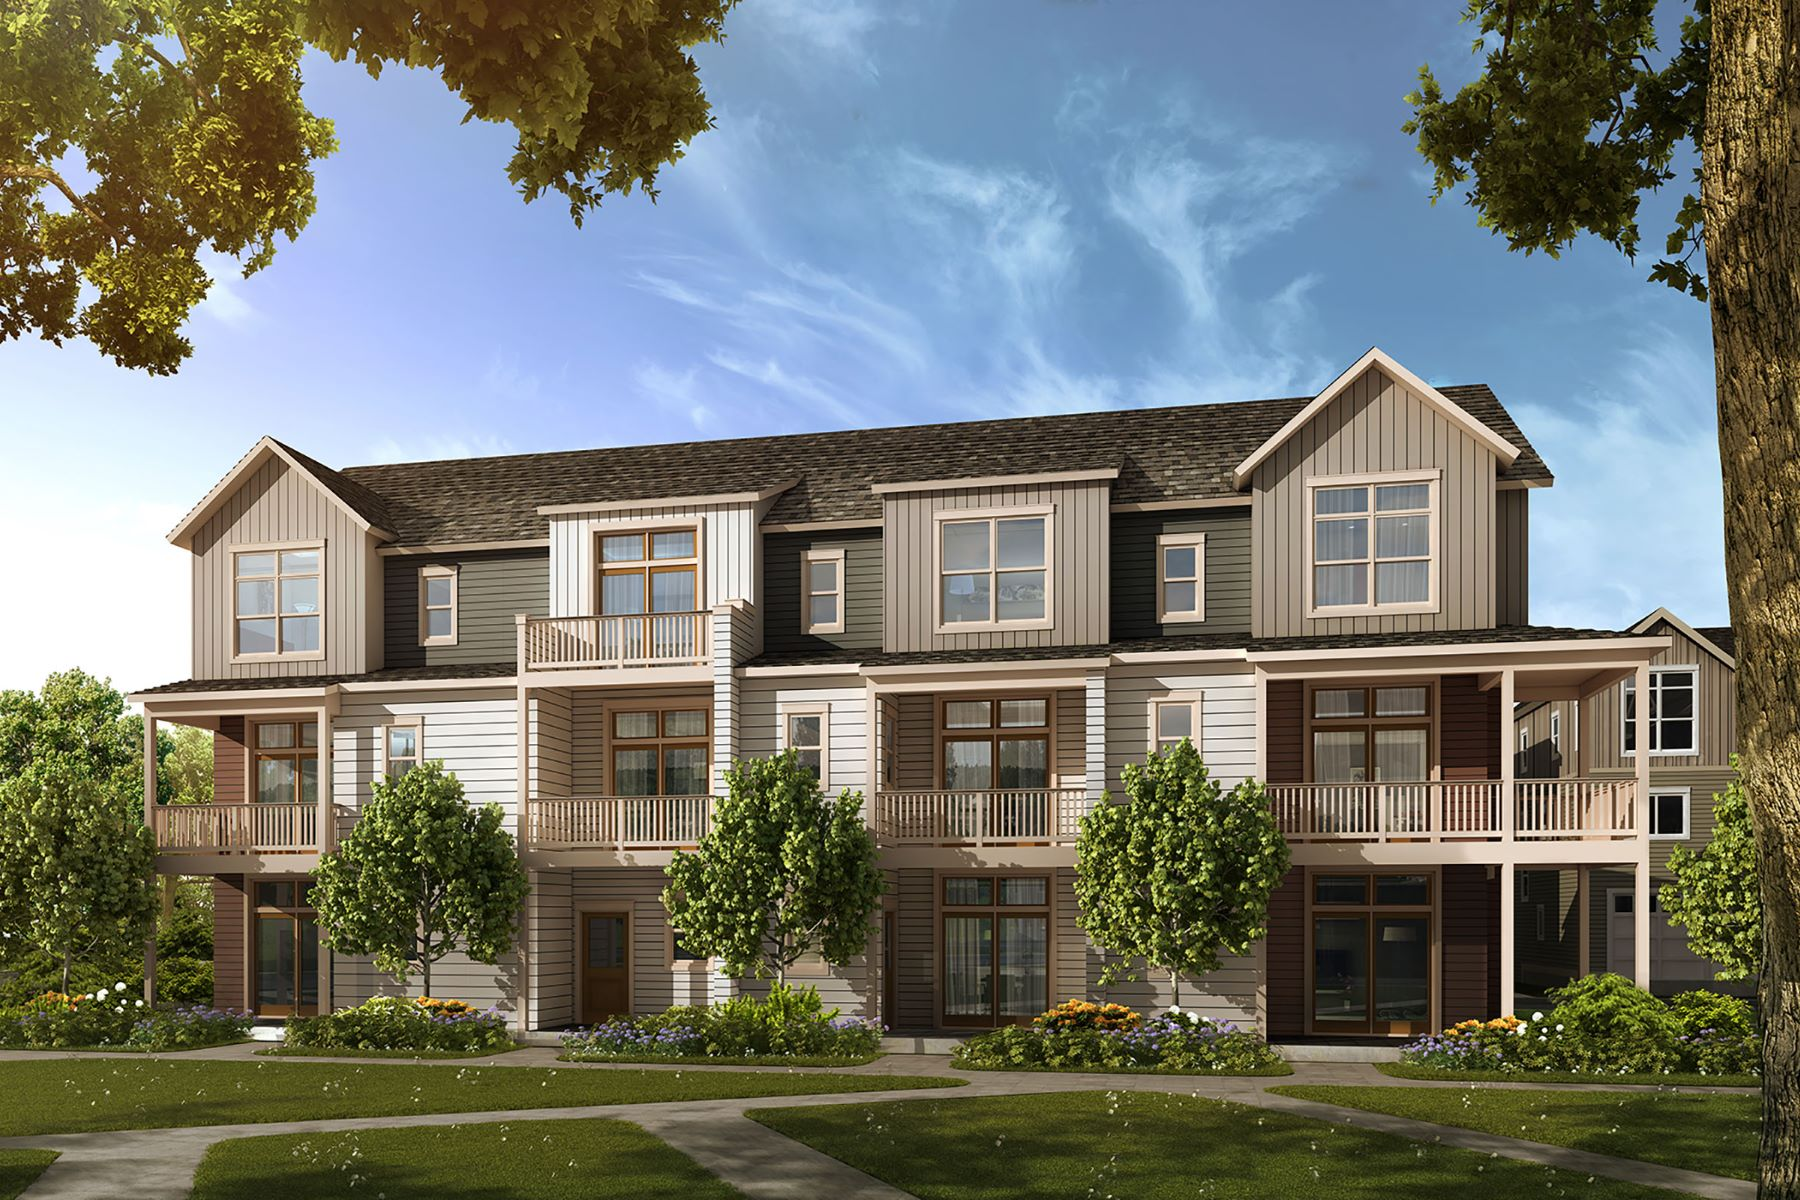 Таунхаус для того Продажа на Beautiful End Unit in New Development 570 West Amherst Avenue #Primrose- End, Englewood, Колорадо, 80110 Соединенные Штаты